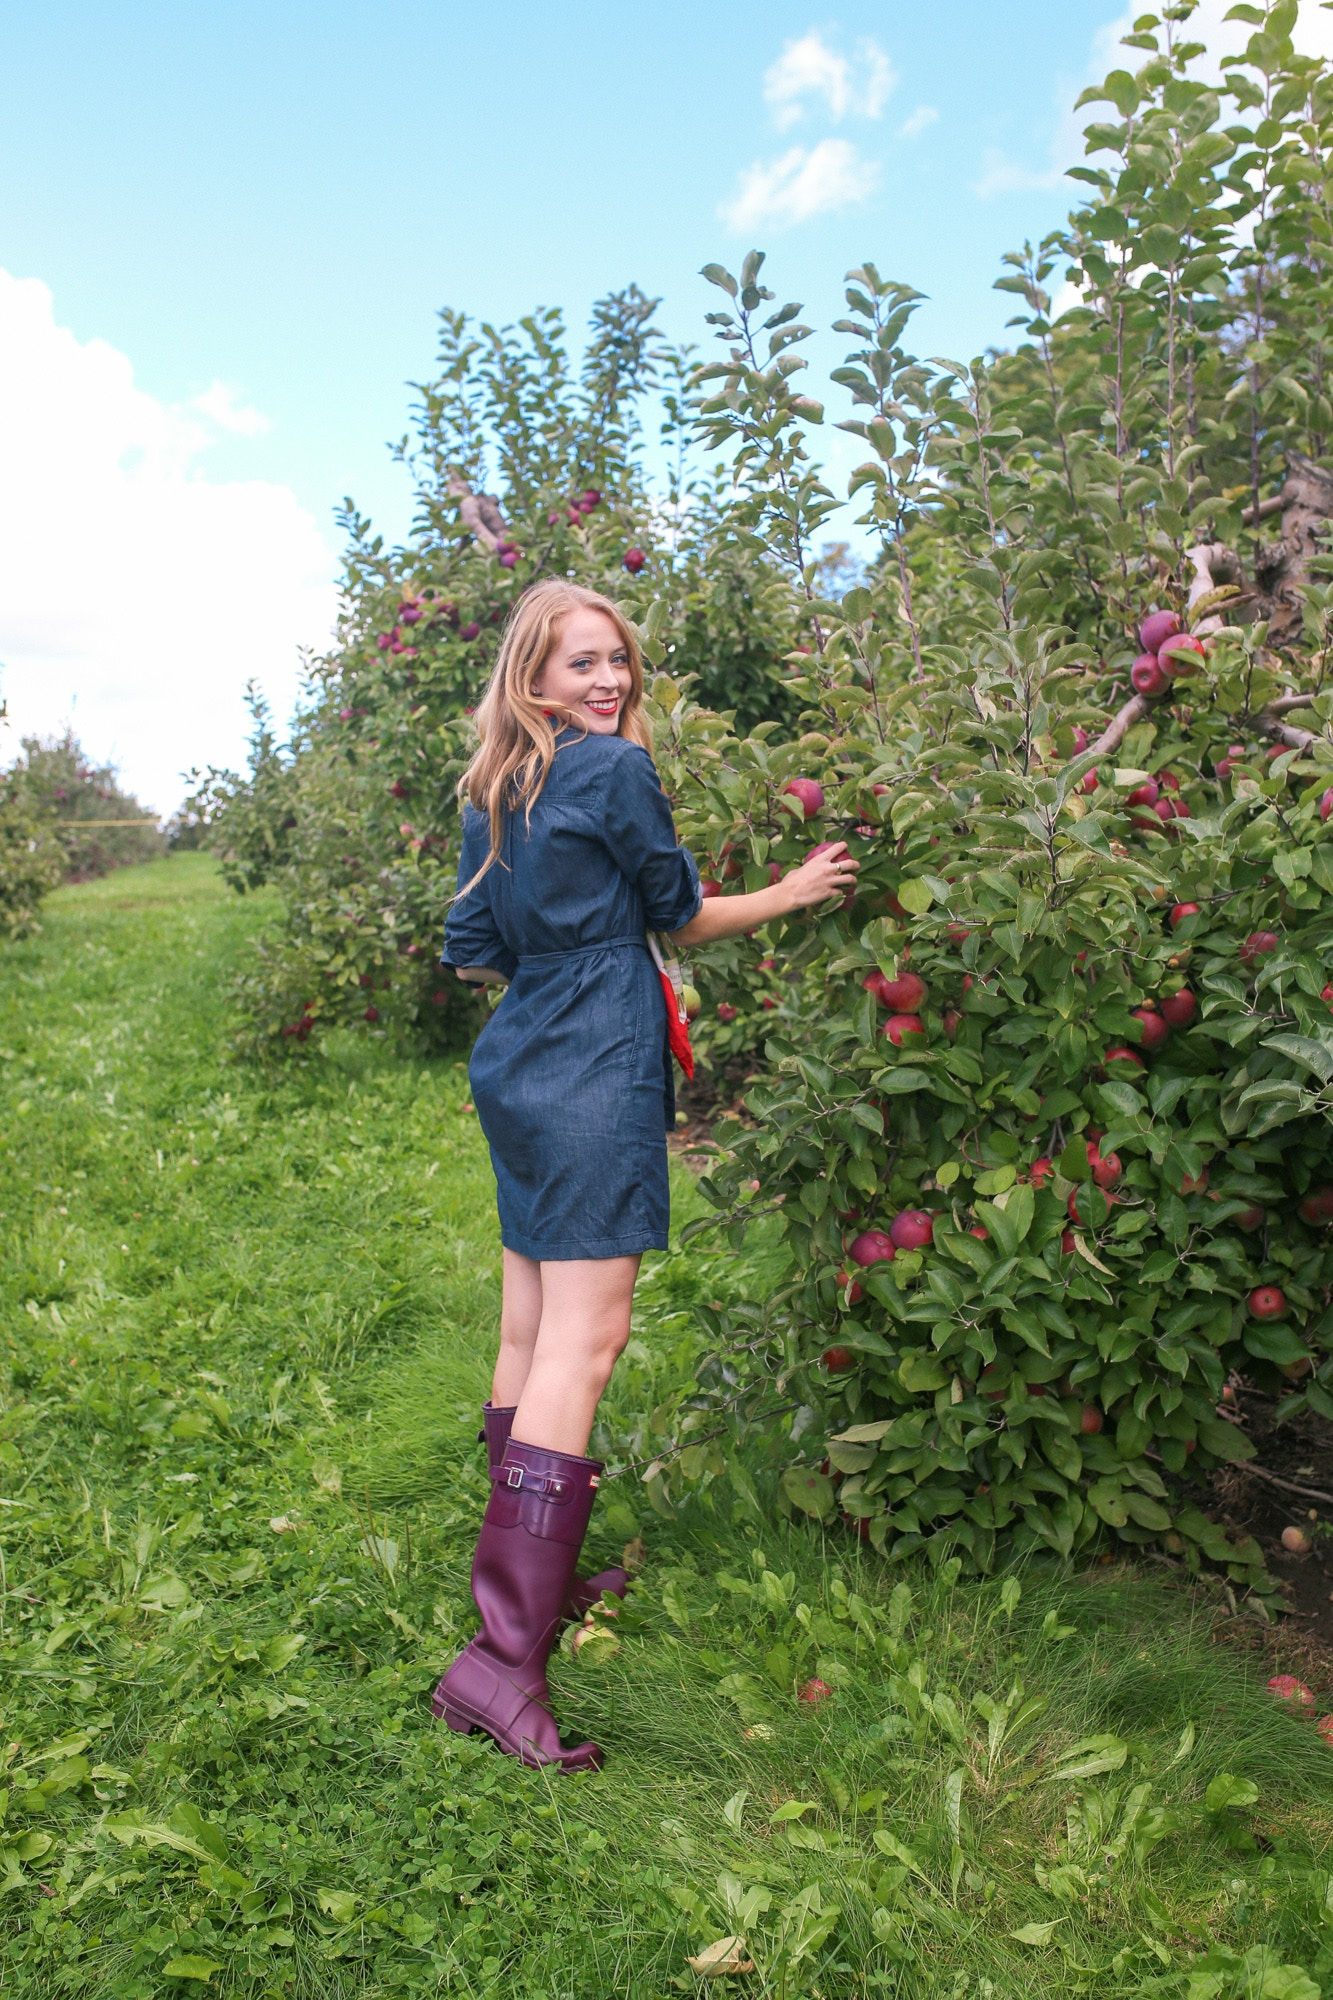 Apple picking near Toronto: Applewood Farm Winery is a gorgeous orchard 30 minutes away.